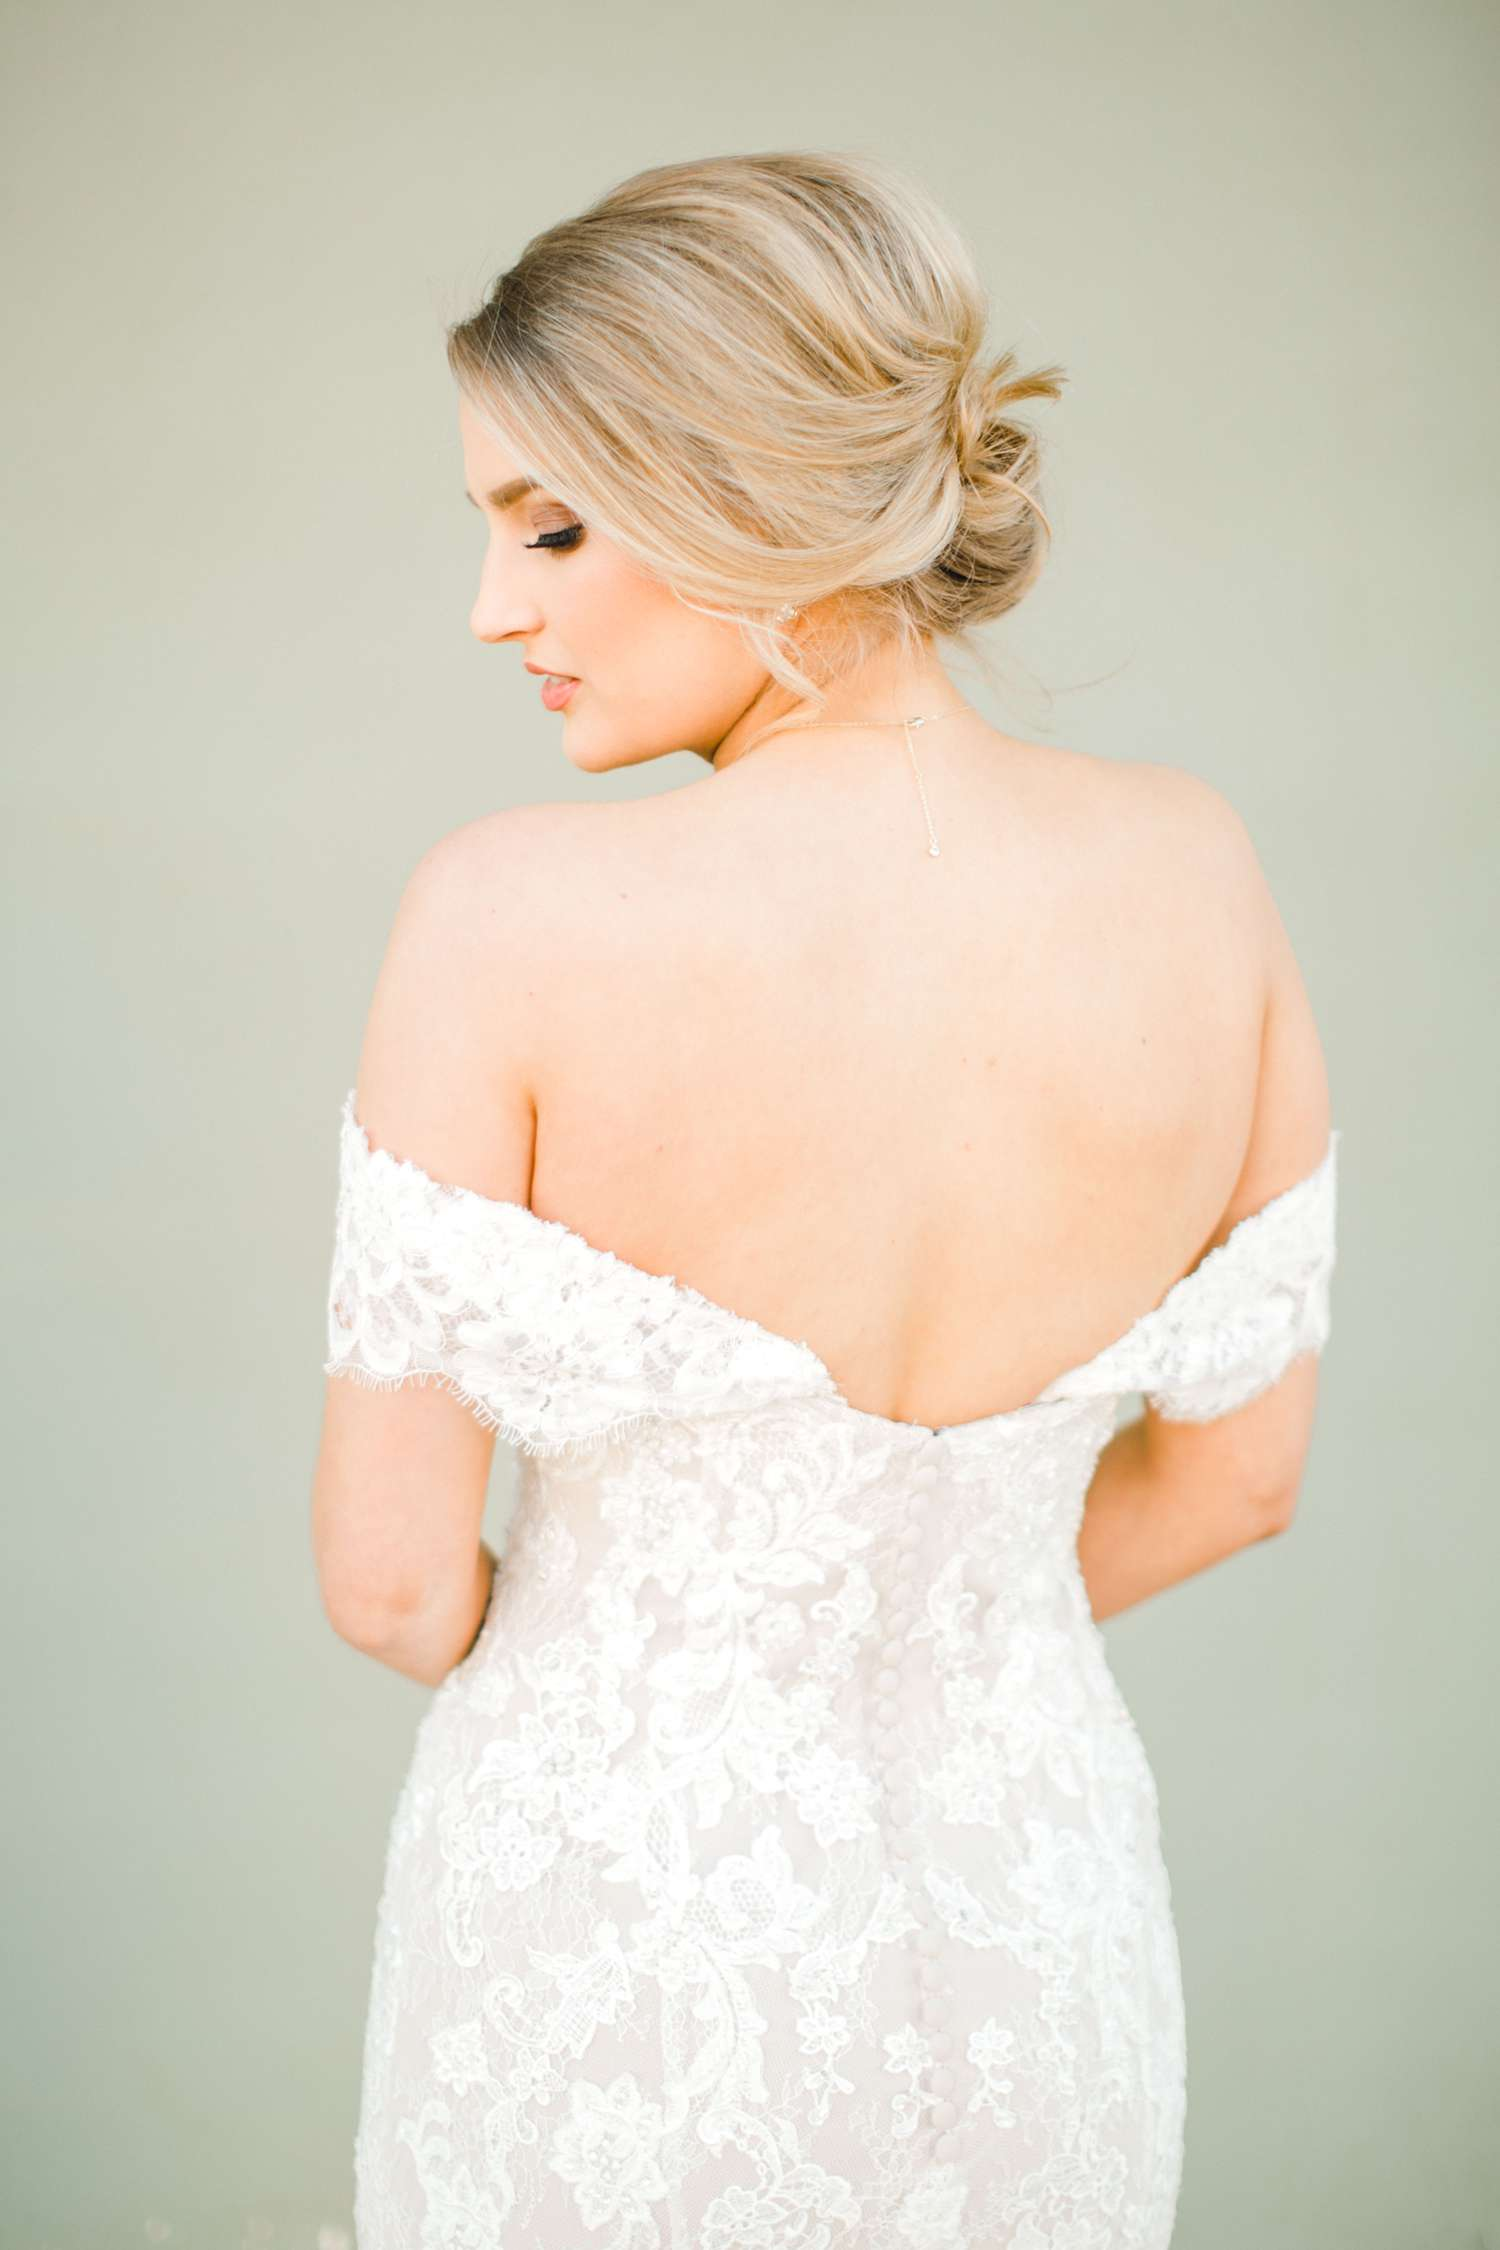 MORGAN+BOONE+BRIDALS+WEDDING+PHOTOGRAPHER_0004.jpg